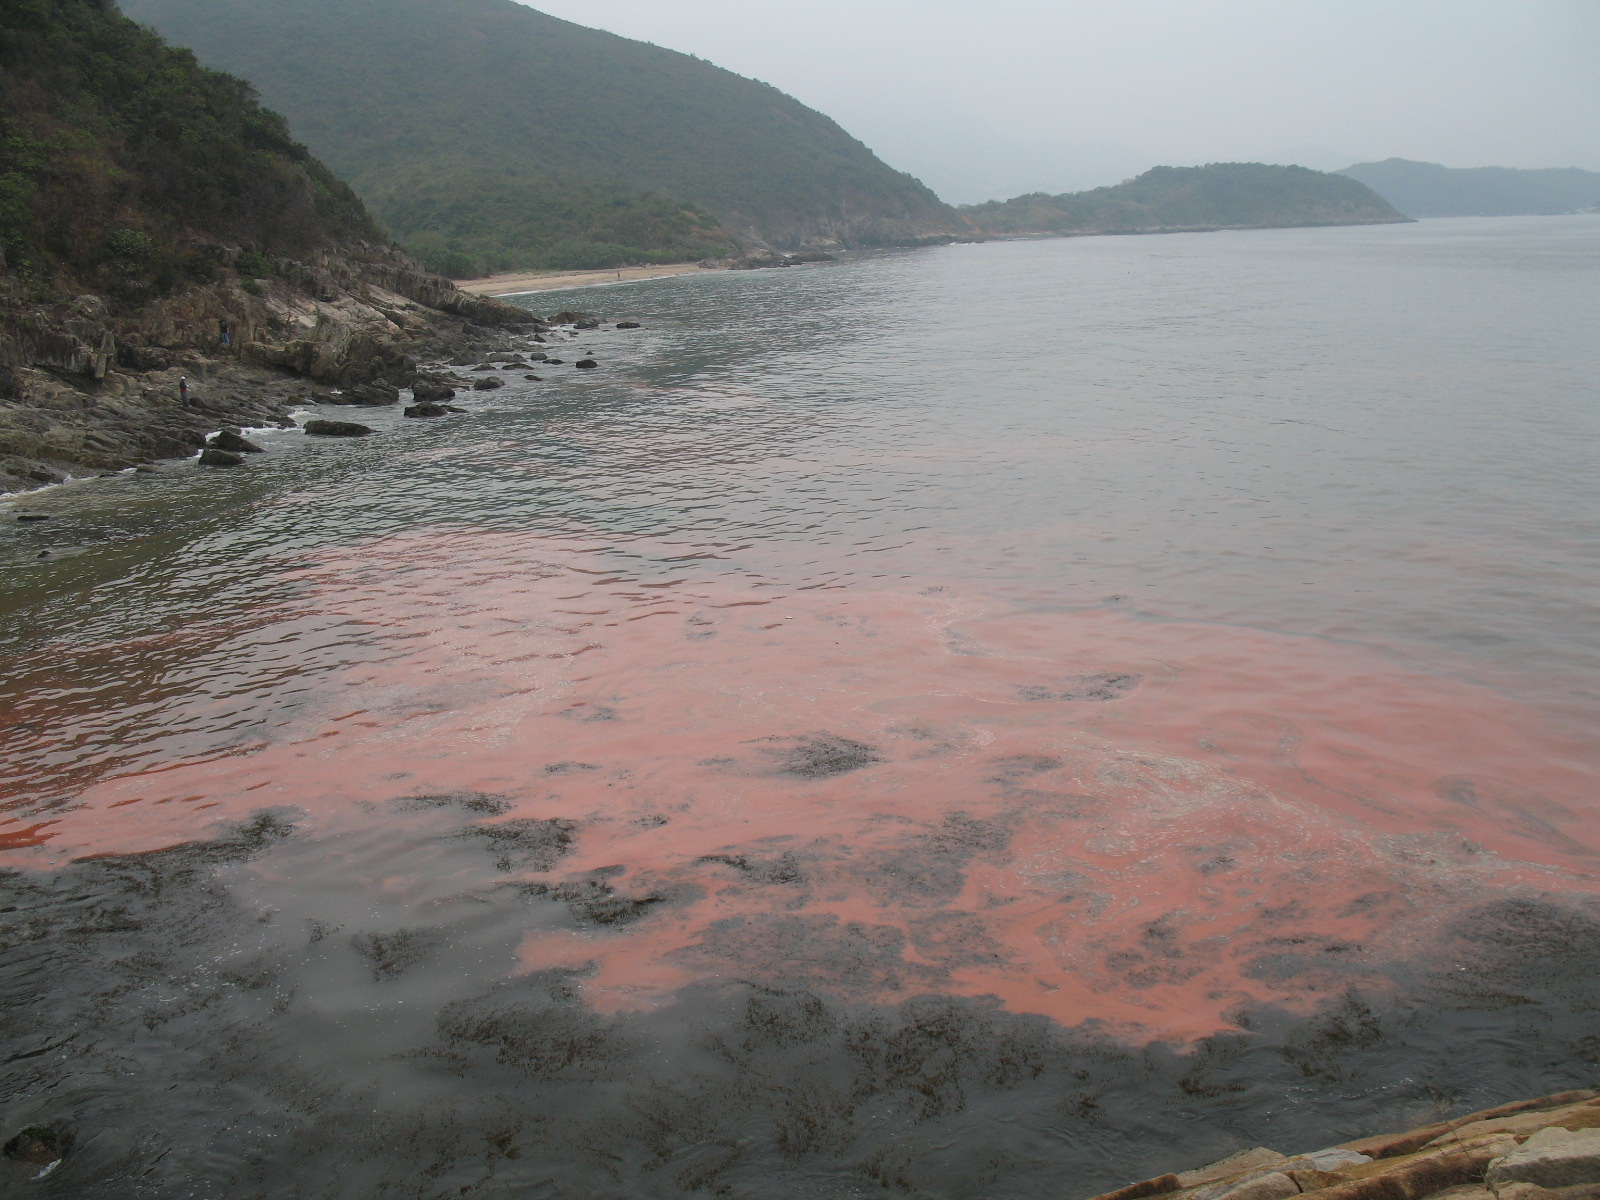 Red tides caused by dinoflagellates